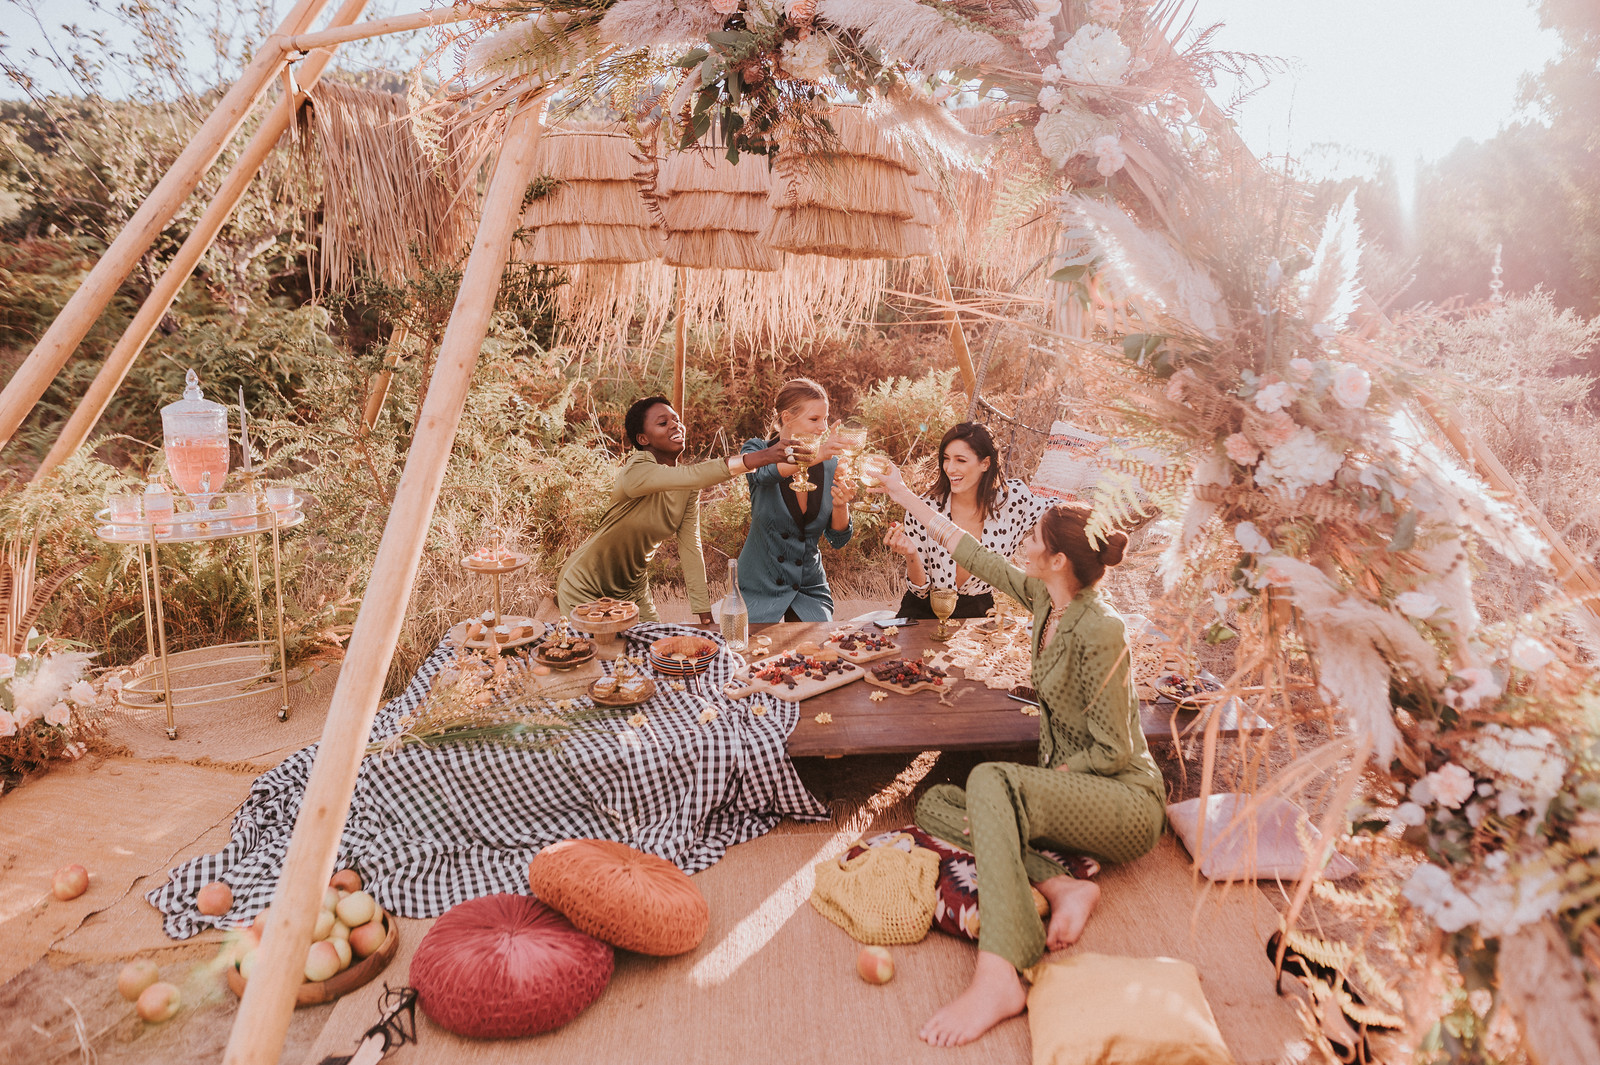 Loving Life Editorial |Sophie and Lucie